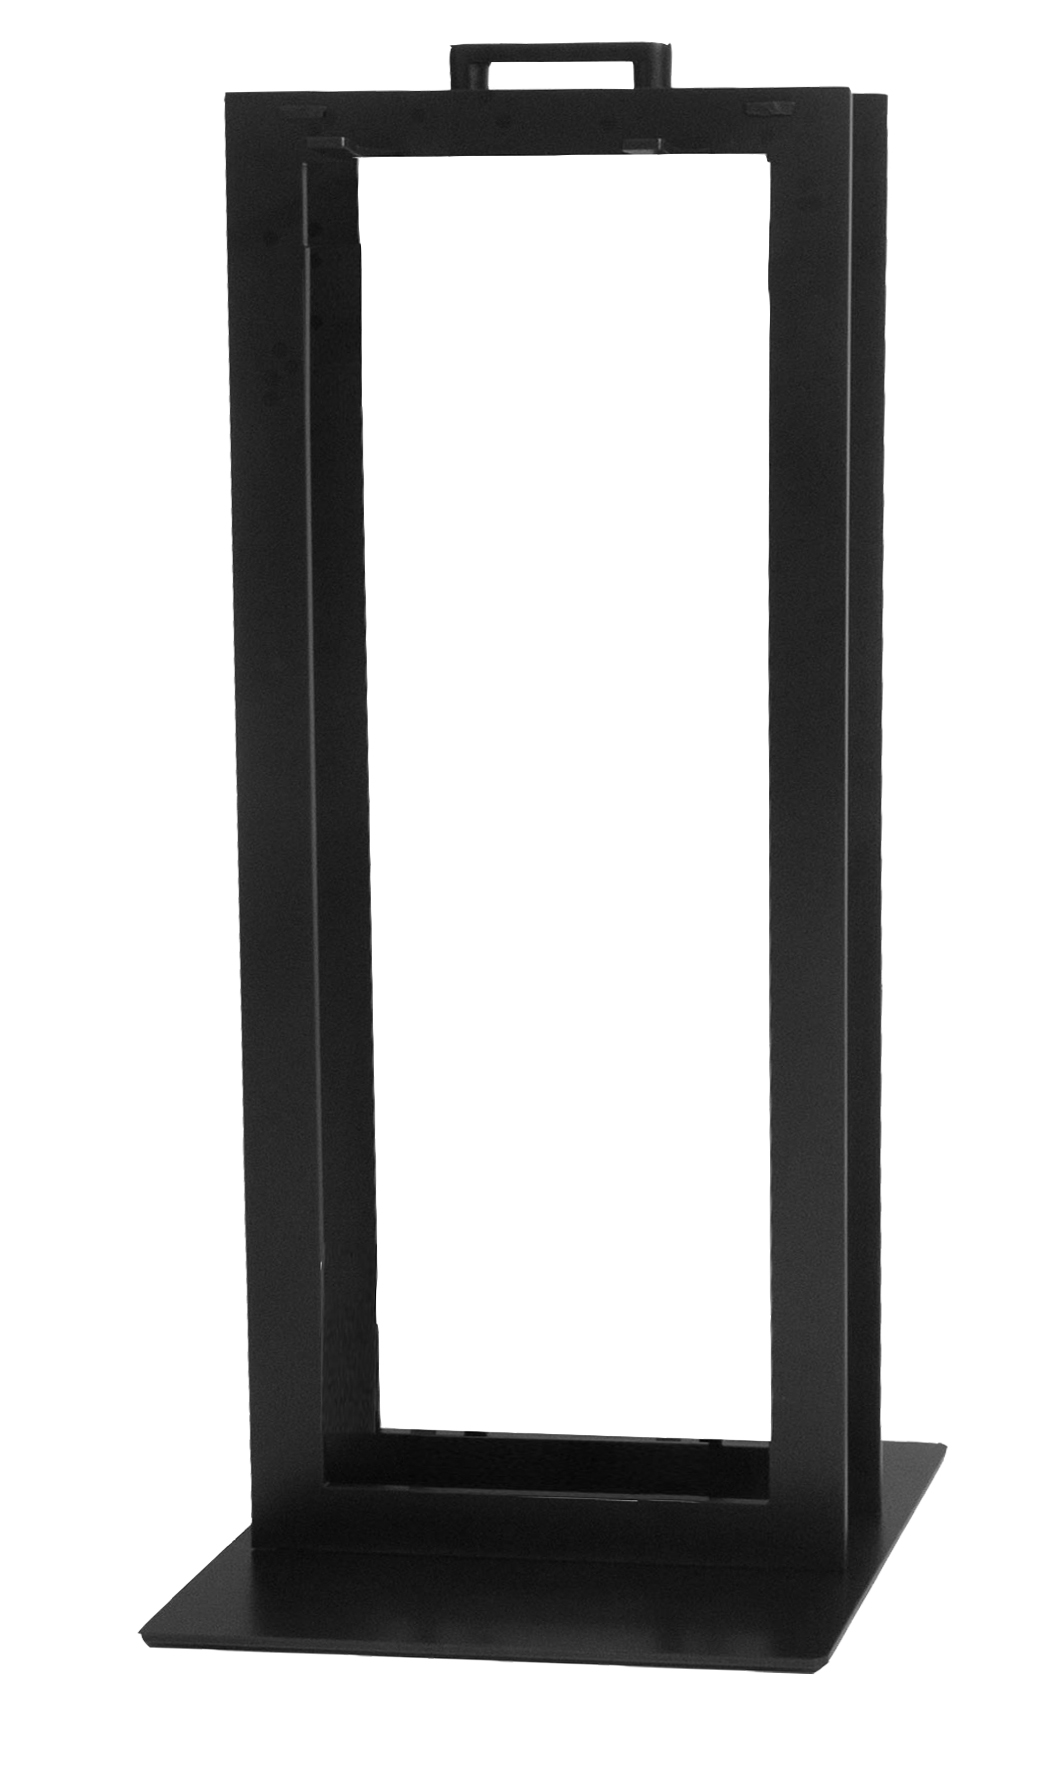 Looking for something modern? You'll love this beautiful black fireplace tool set!